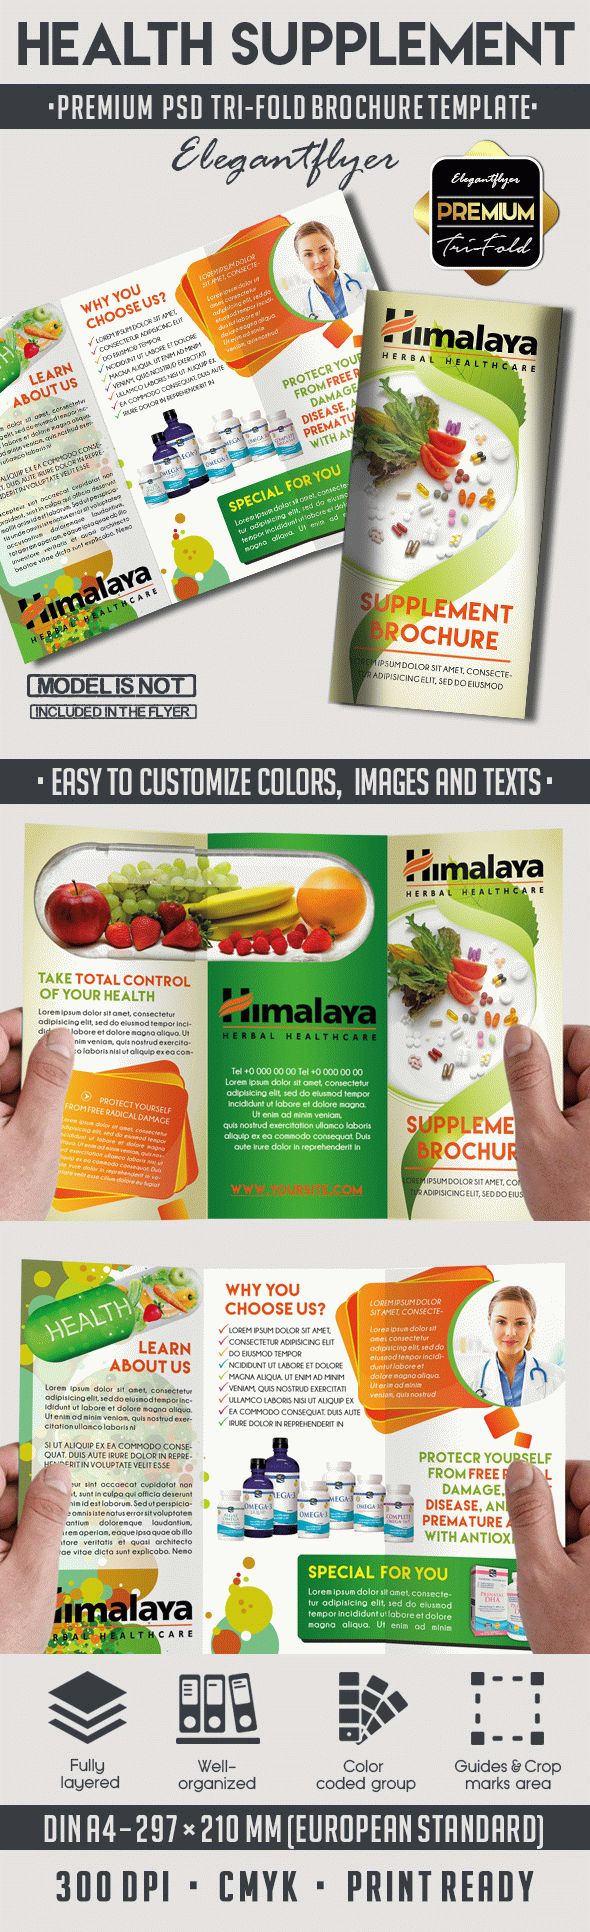 Health Supplement Brochure